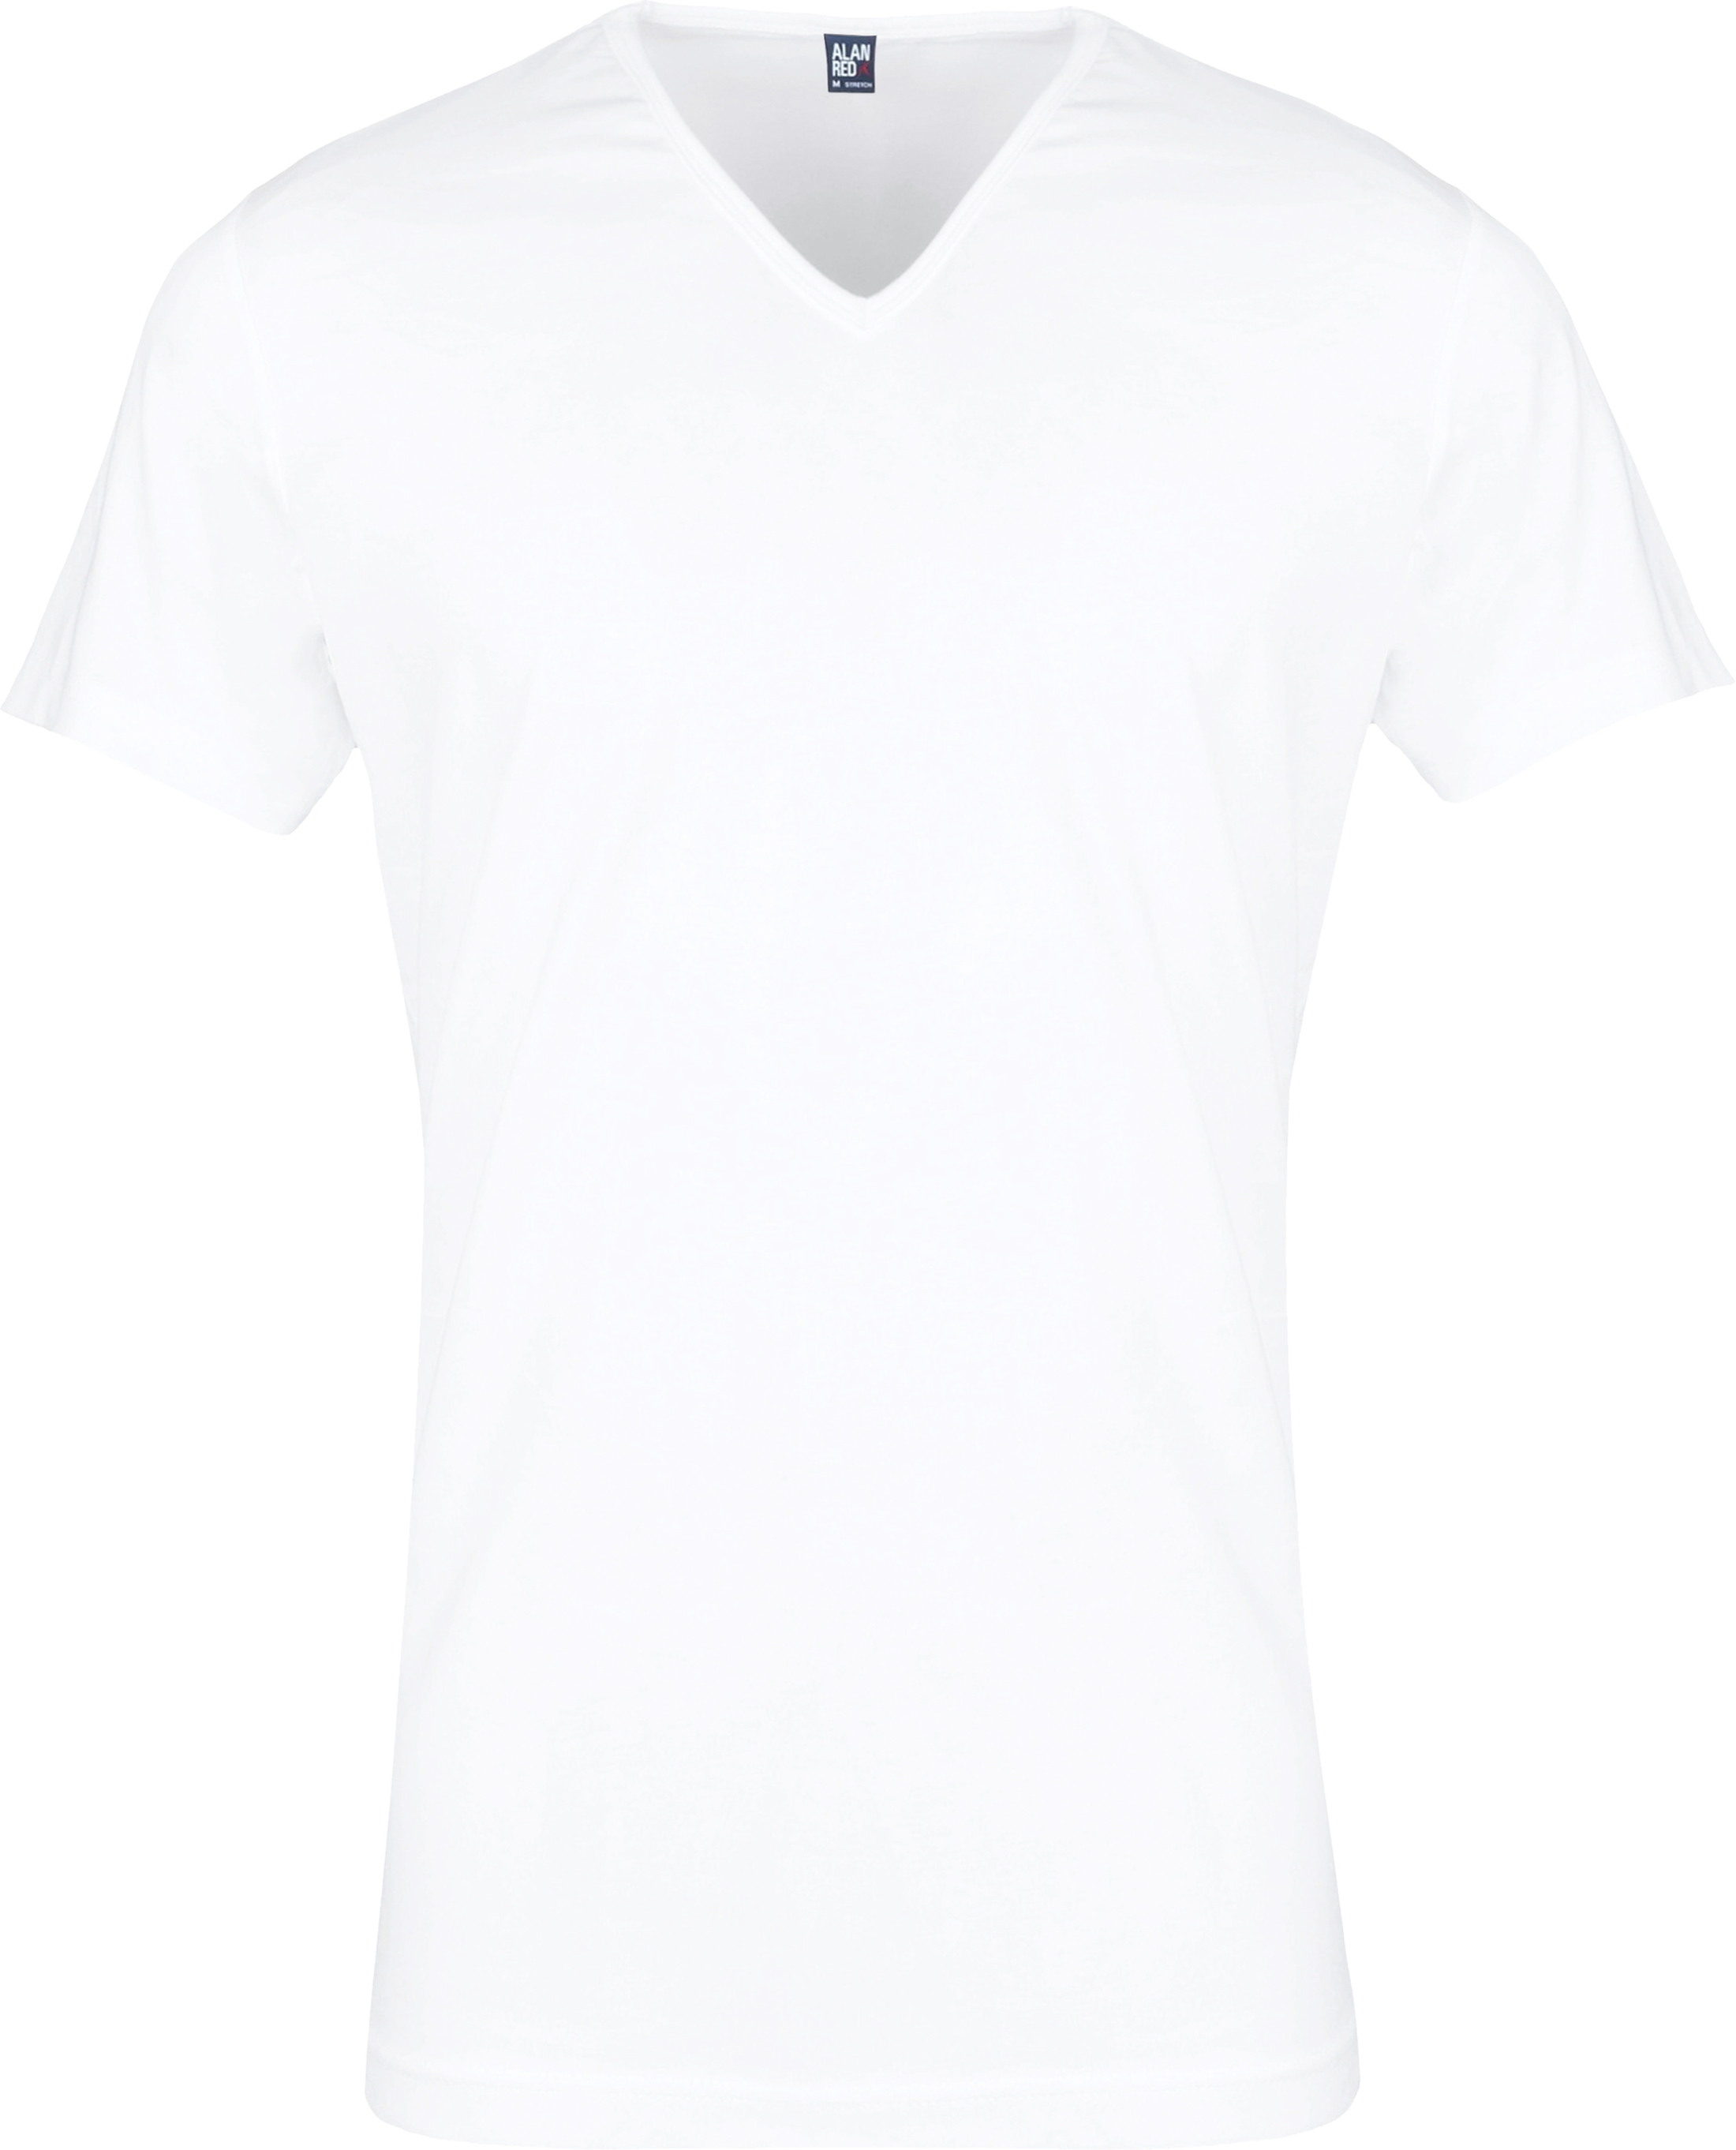 Alan Red Oklahoma T-shirt Stretch White 2-Pack foto 1